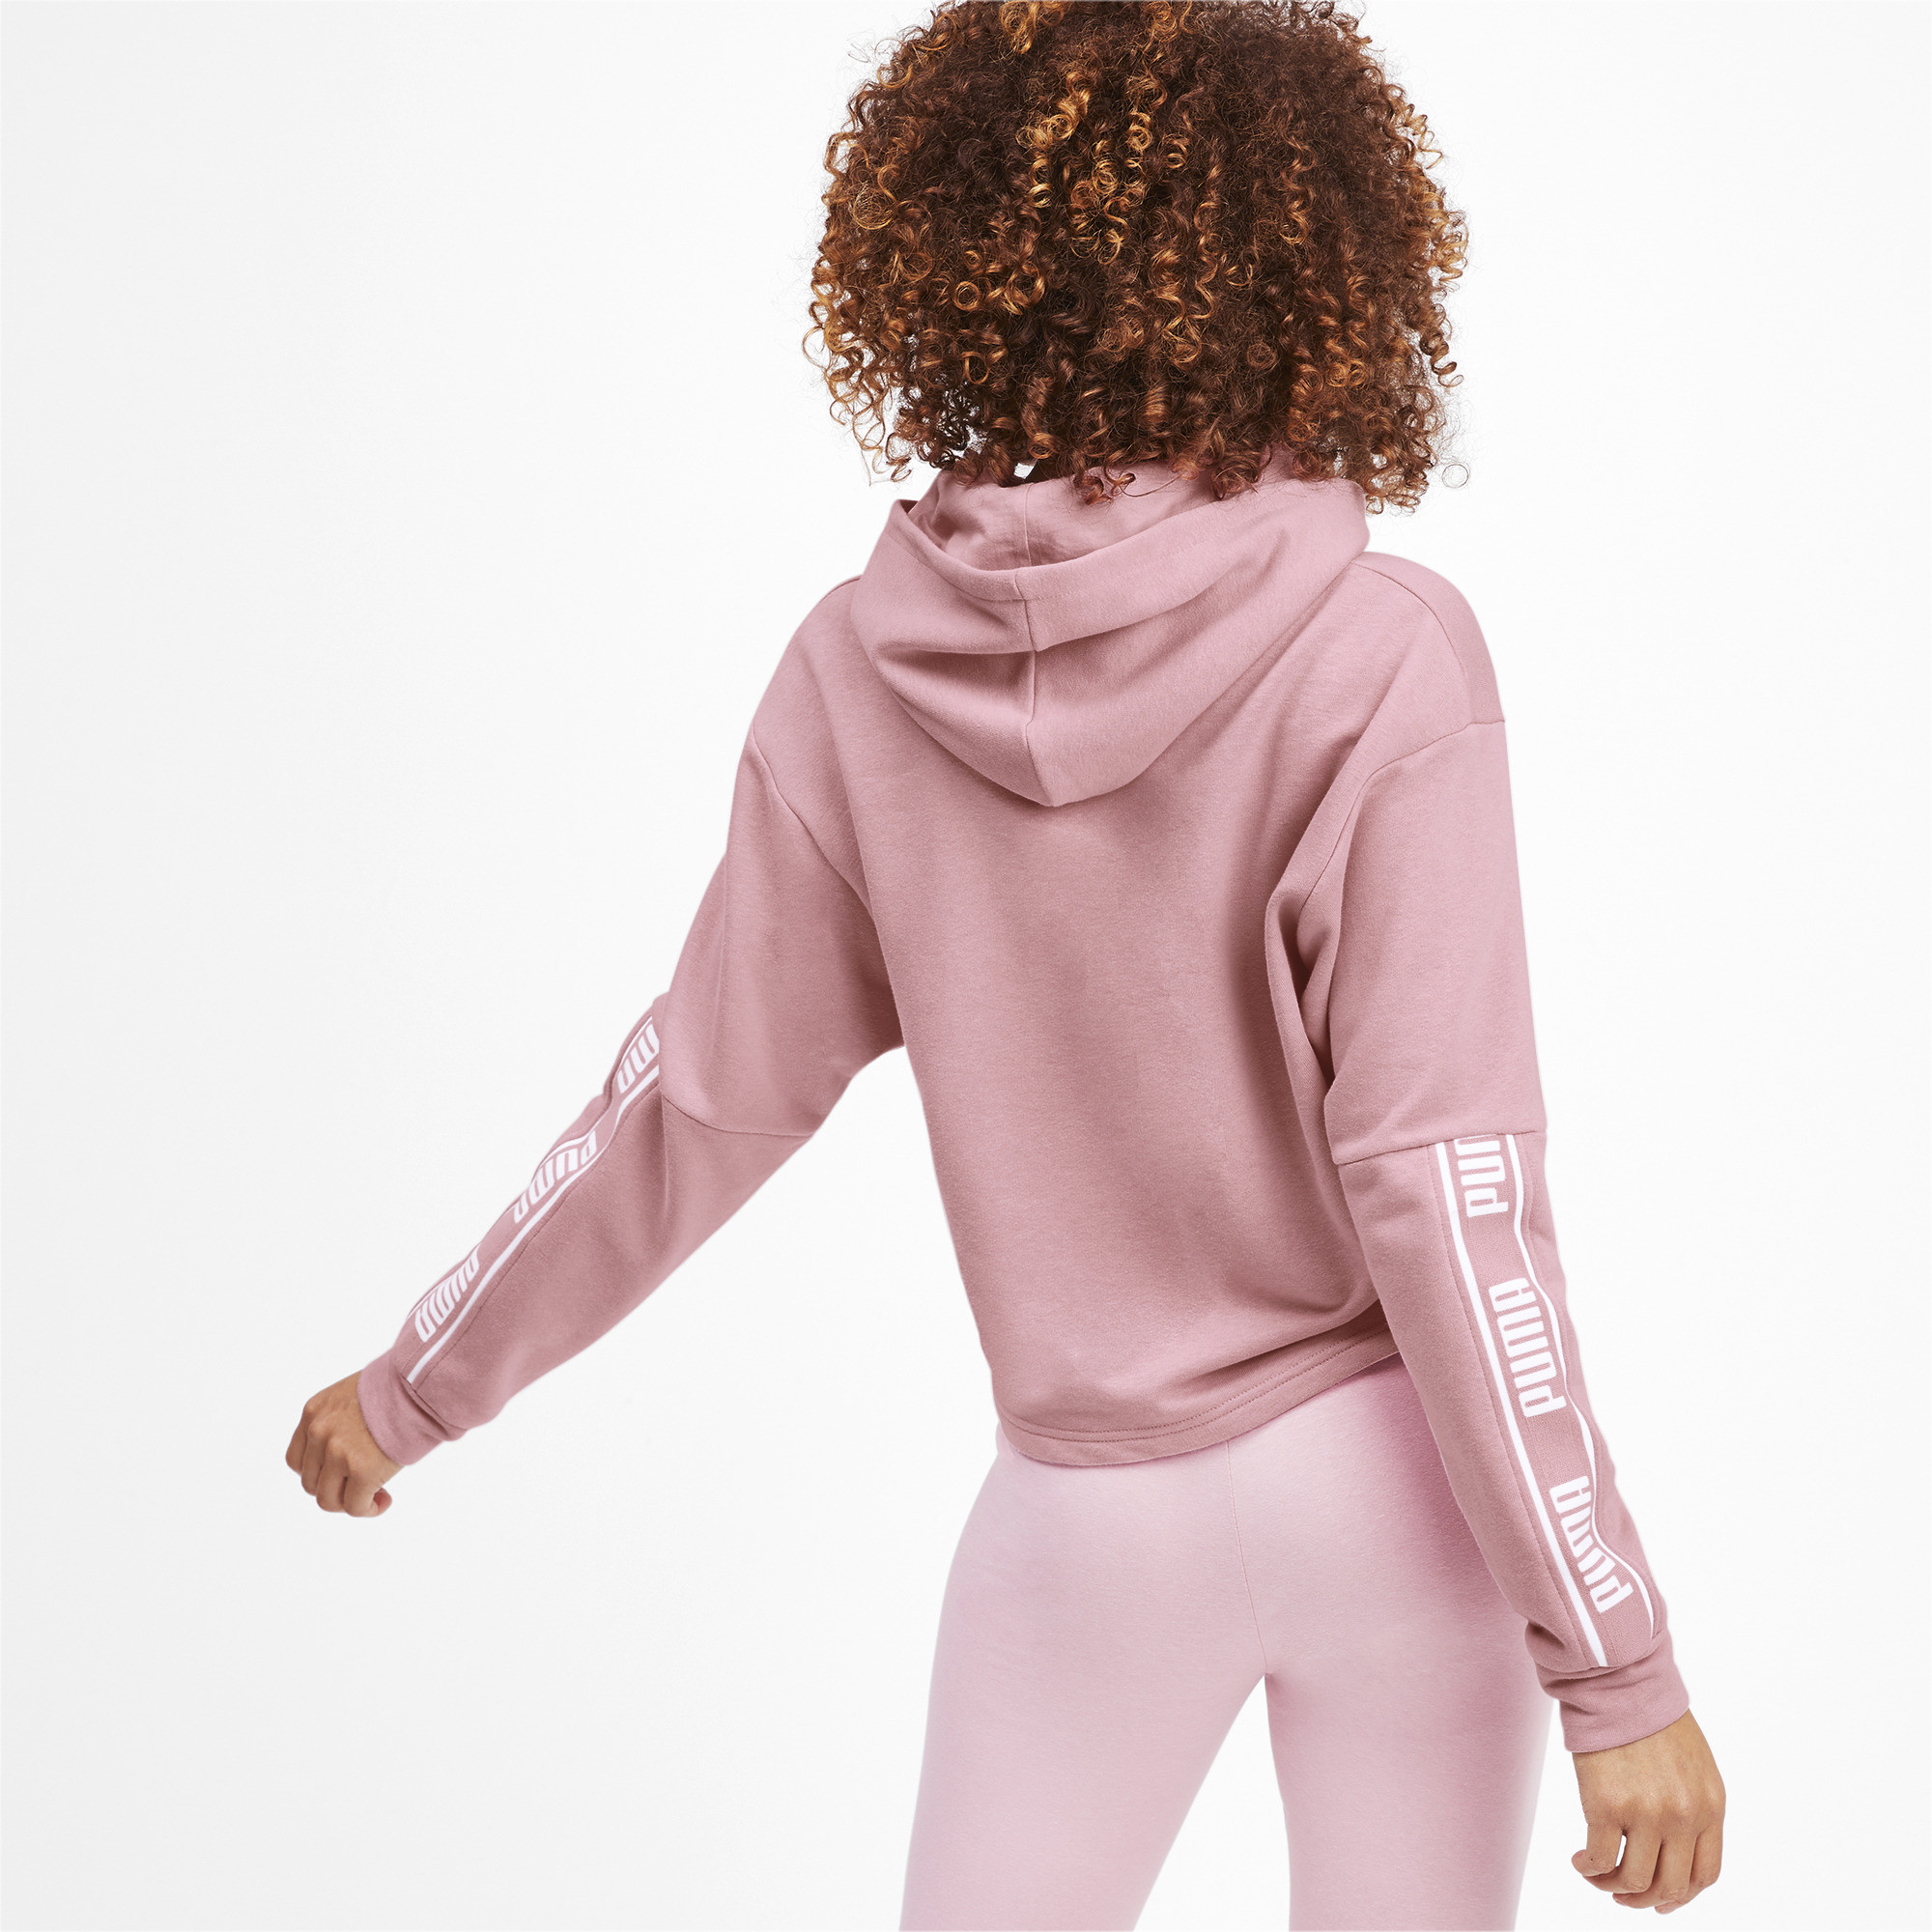 PUMA-Amplified-Women-039-s-Cropped-Hoodie-Women-Sweat-Basics thumbnail 10